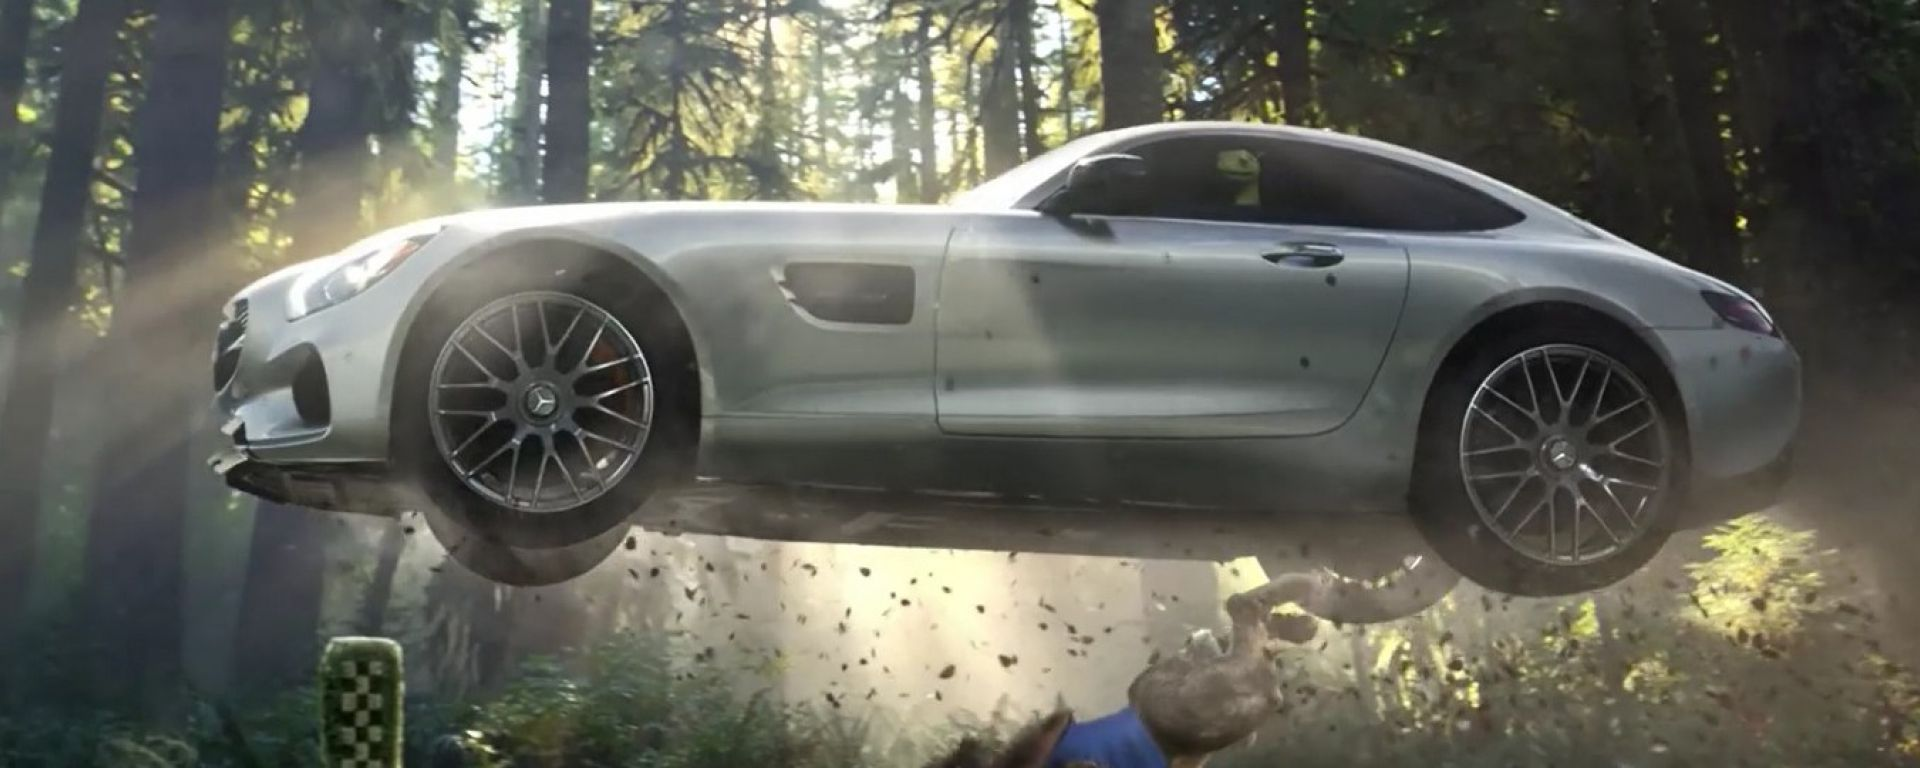 Mercedes AMG GT: The Big Race